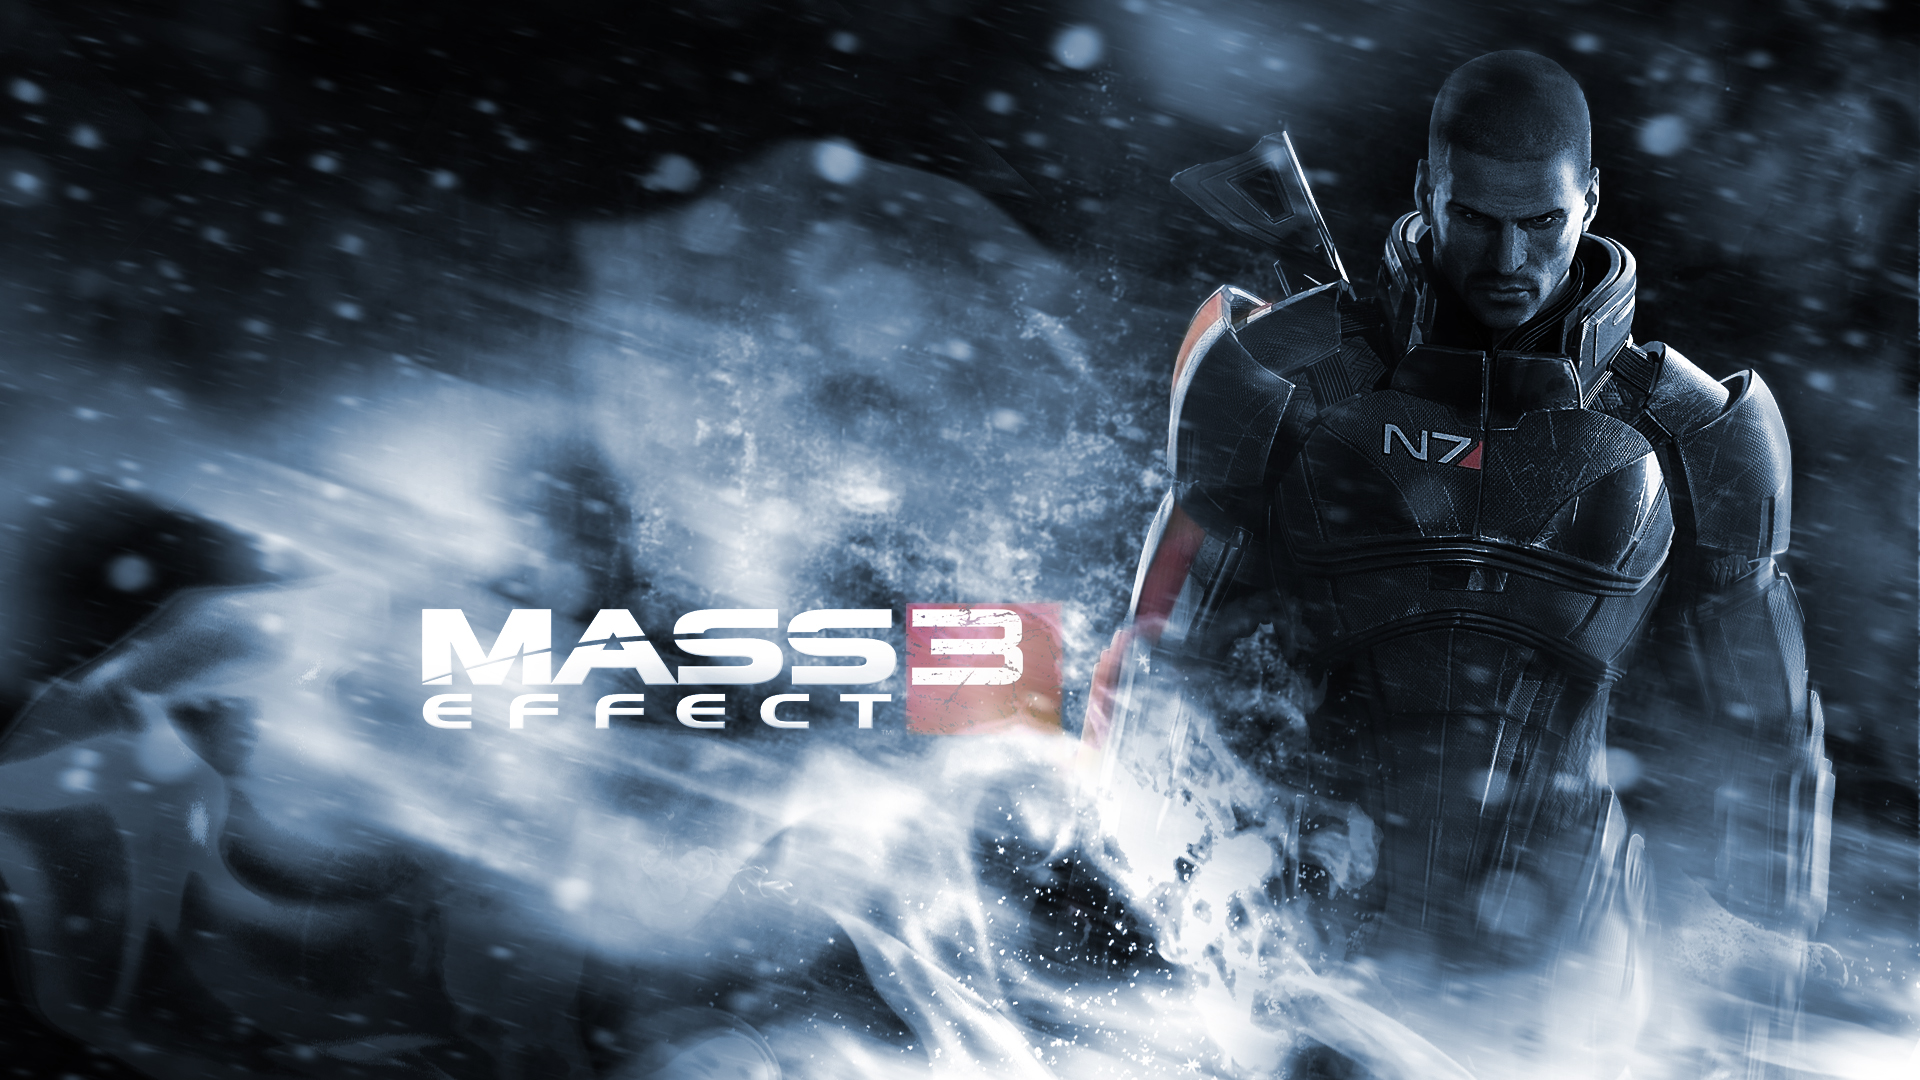 Free Download Mass Effect 3 Wallpaper 1920x1080 1920x1080 For